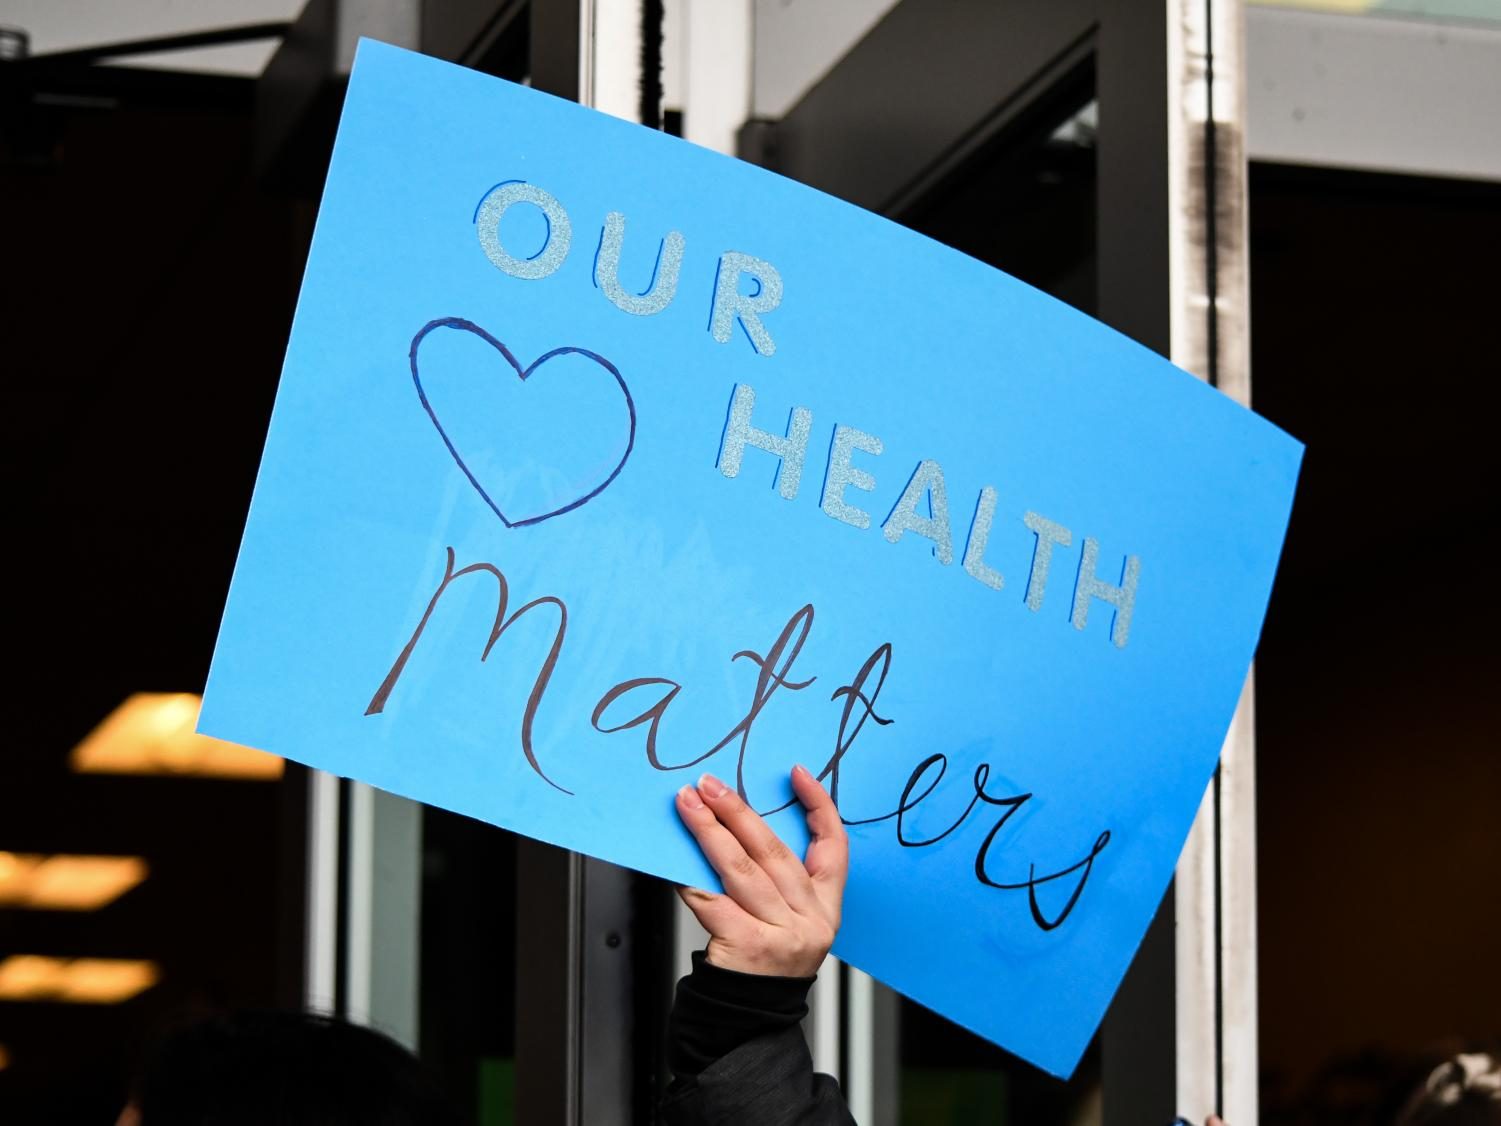 Students walked out of school on Feb. 4 in support of changes to health curriculum.